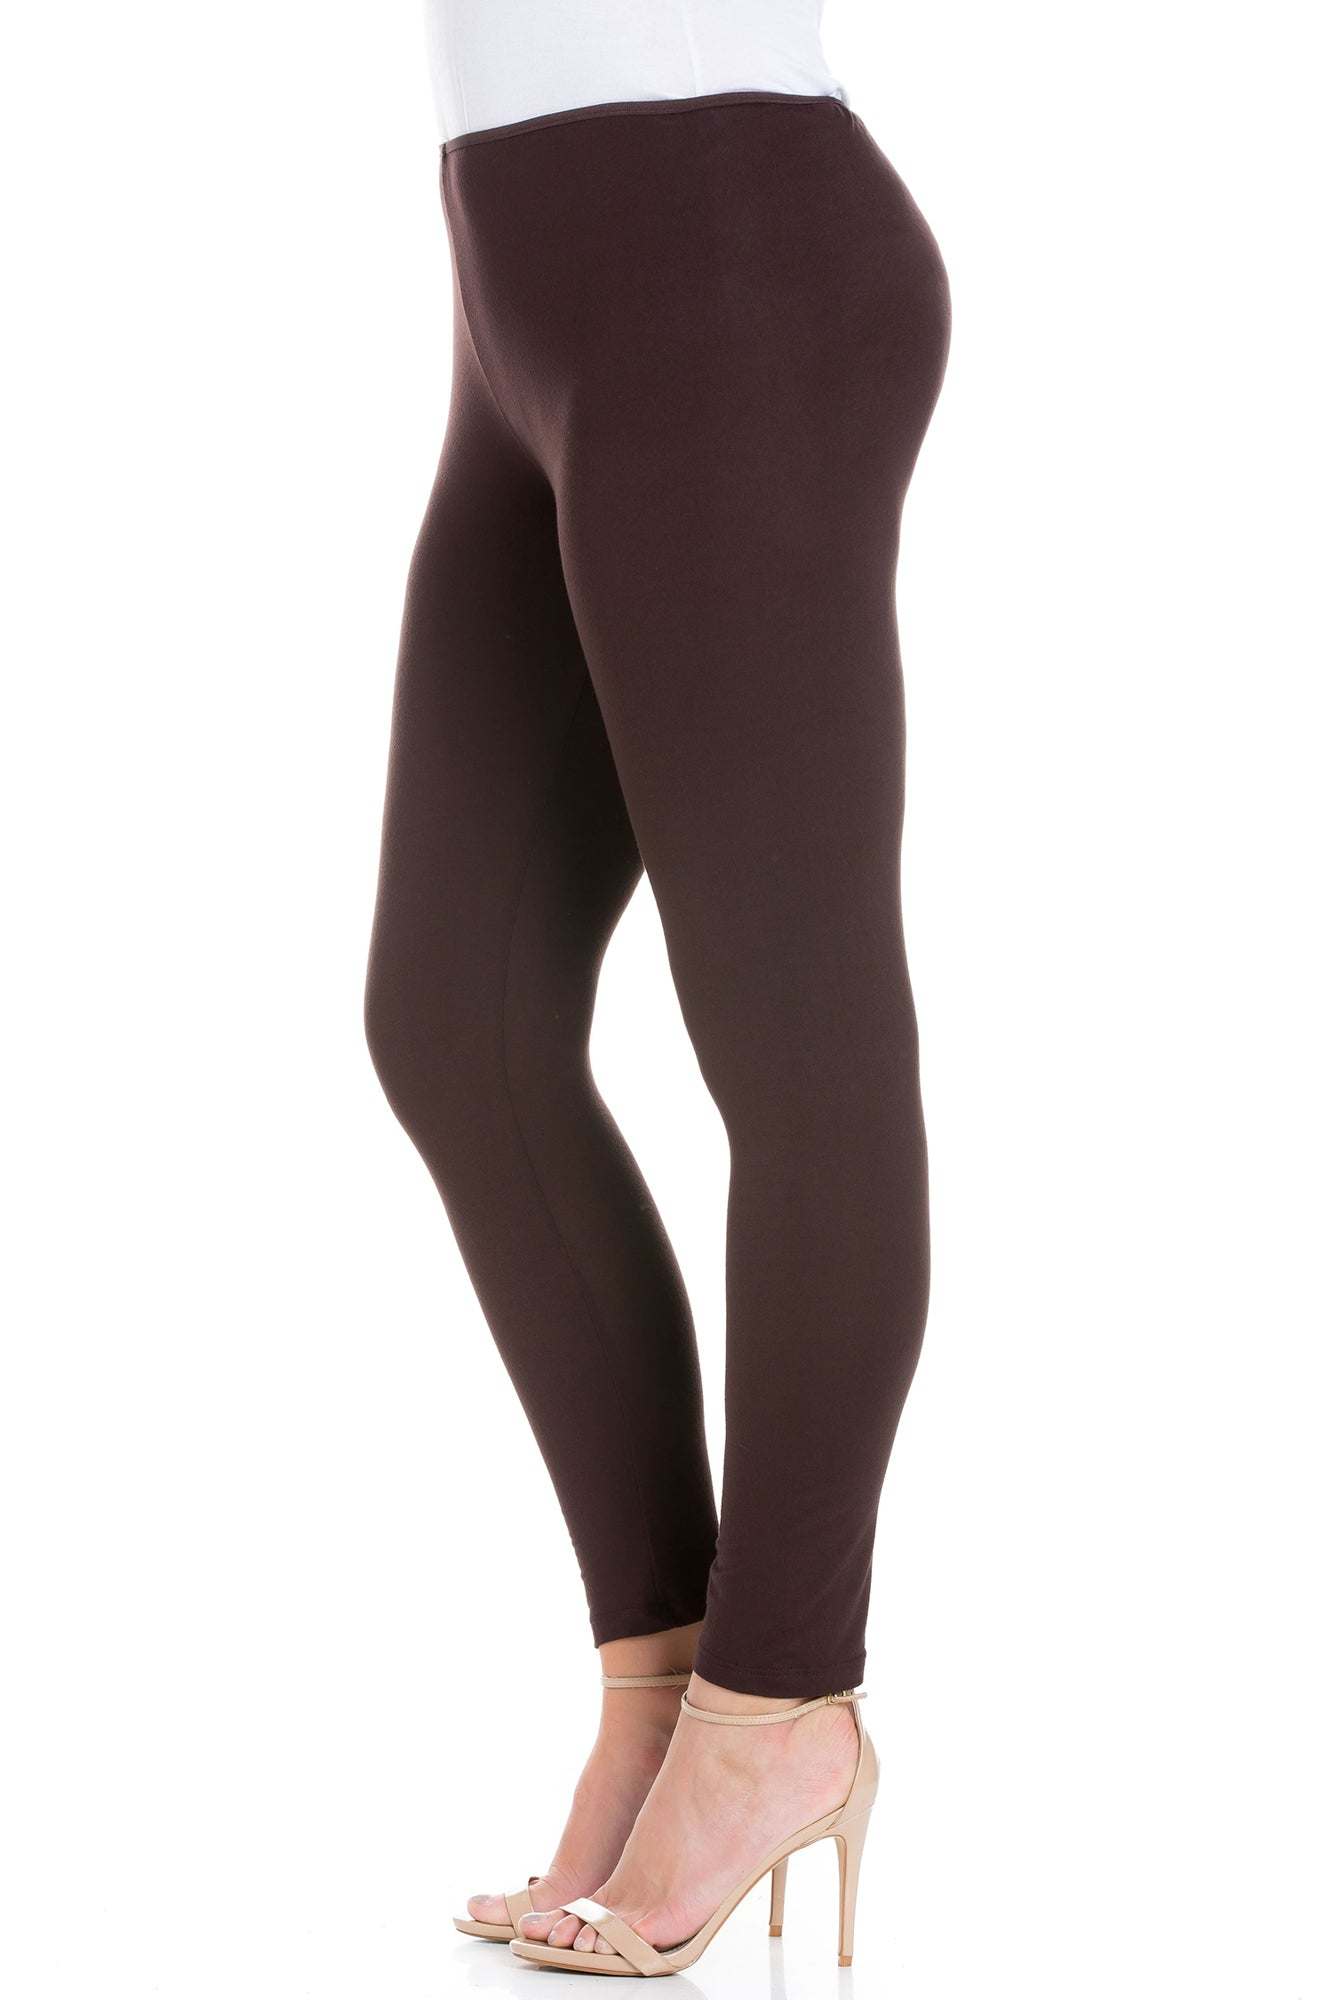 24seven Comfort Apparel Womens Comfortable Ankle Length Leggings-PANTS-24Seven Comfort Apparel-BROWN-S-24/7 Comfort Apparel